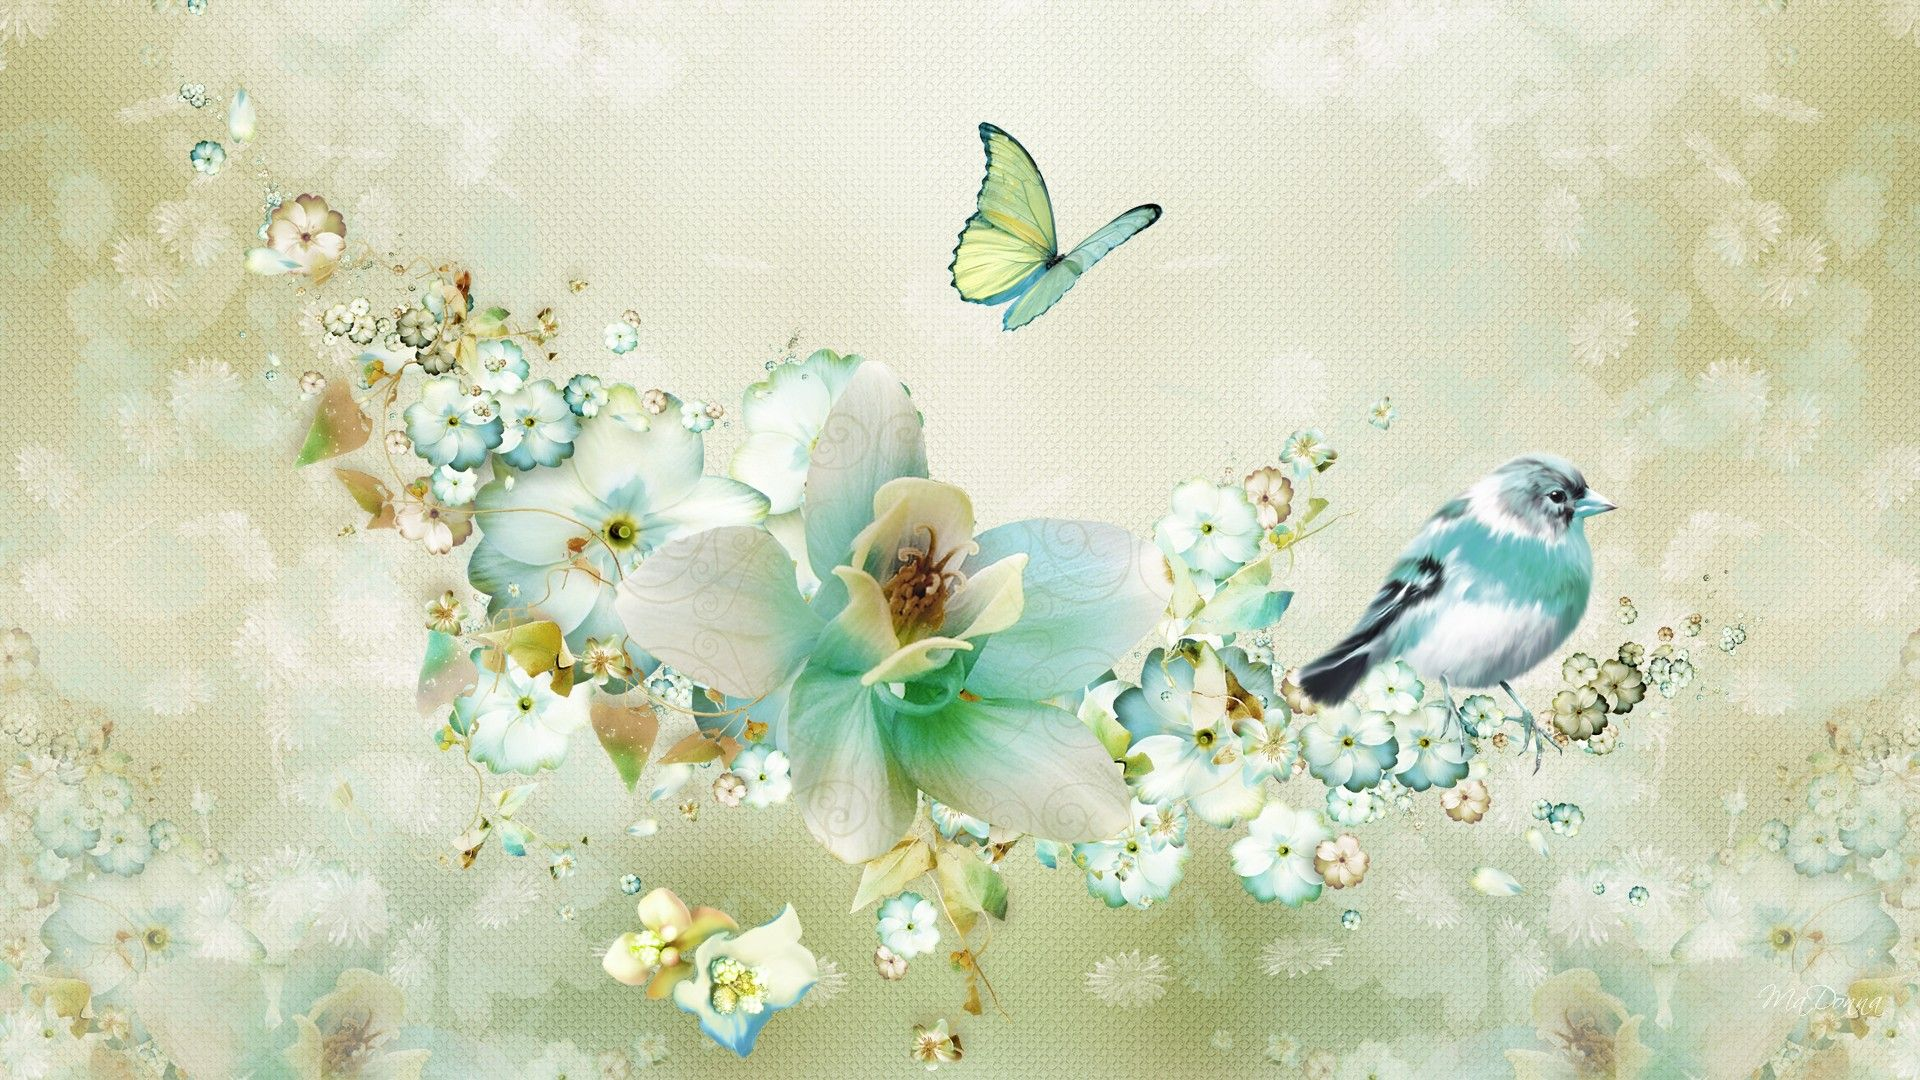 Spring Flowers And Birds Hd Images 3 Spring Flowers Wallpaper Butterfly Wallpaper Flower Wallpaper